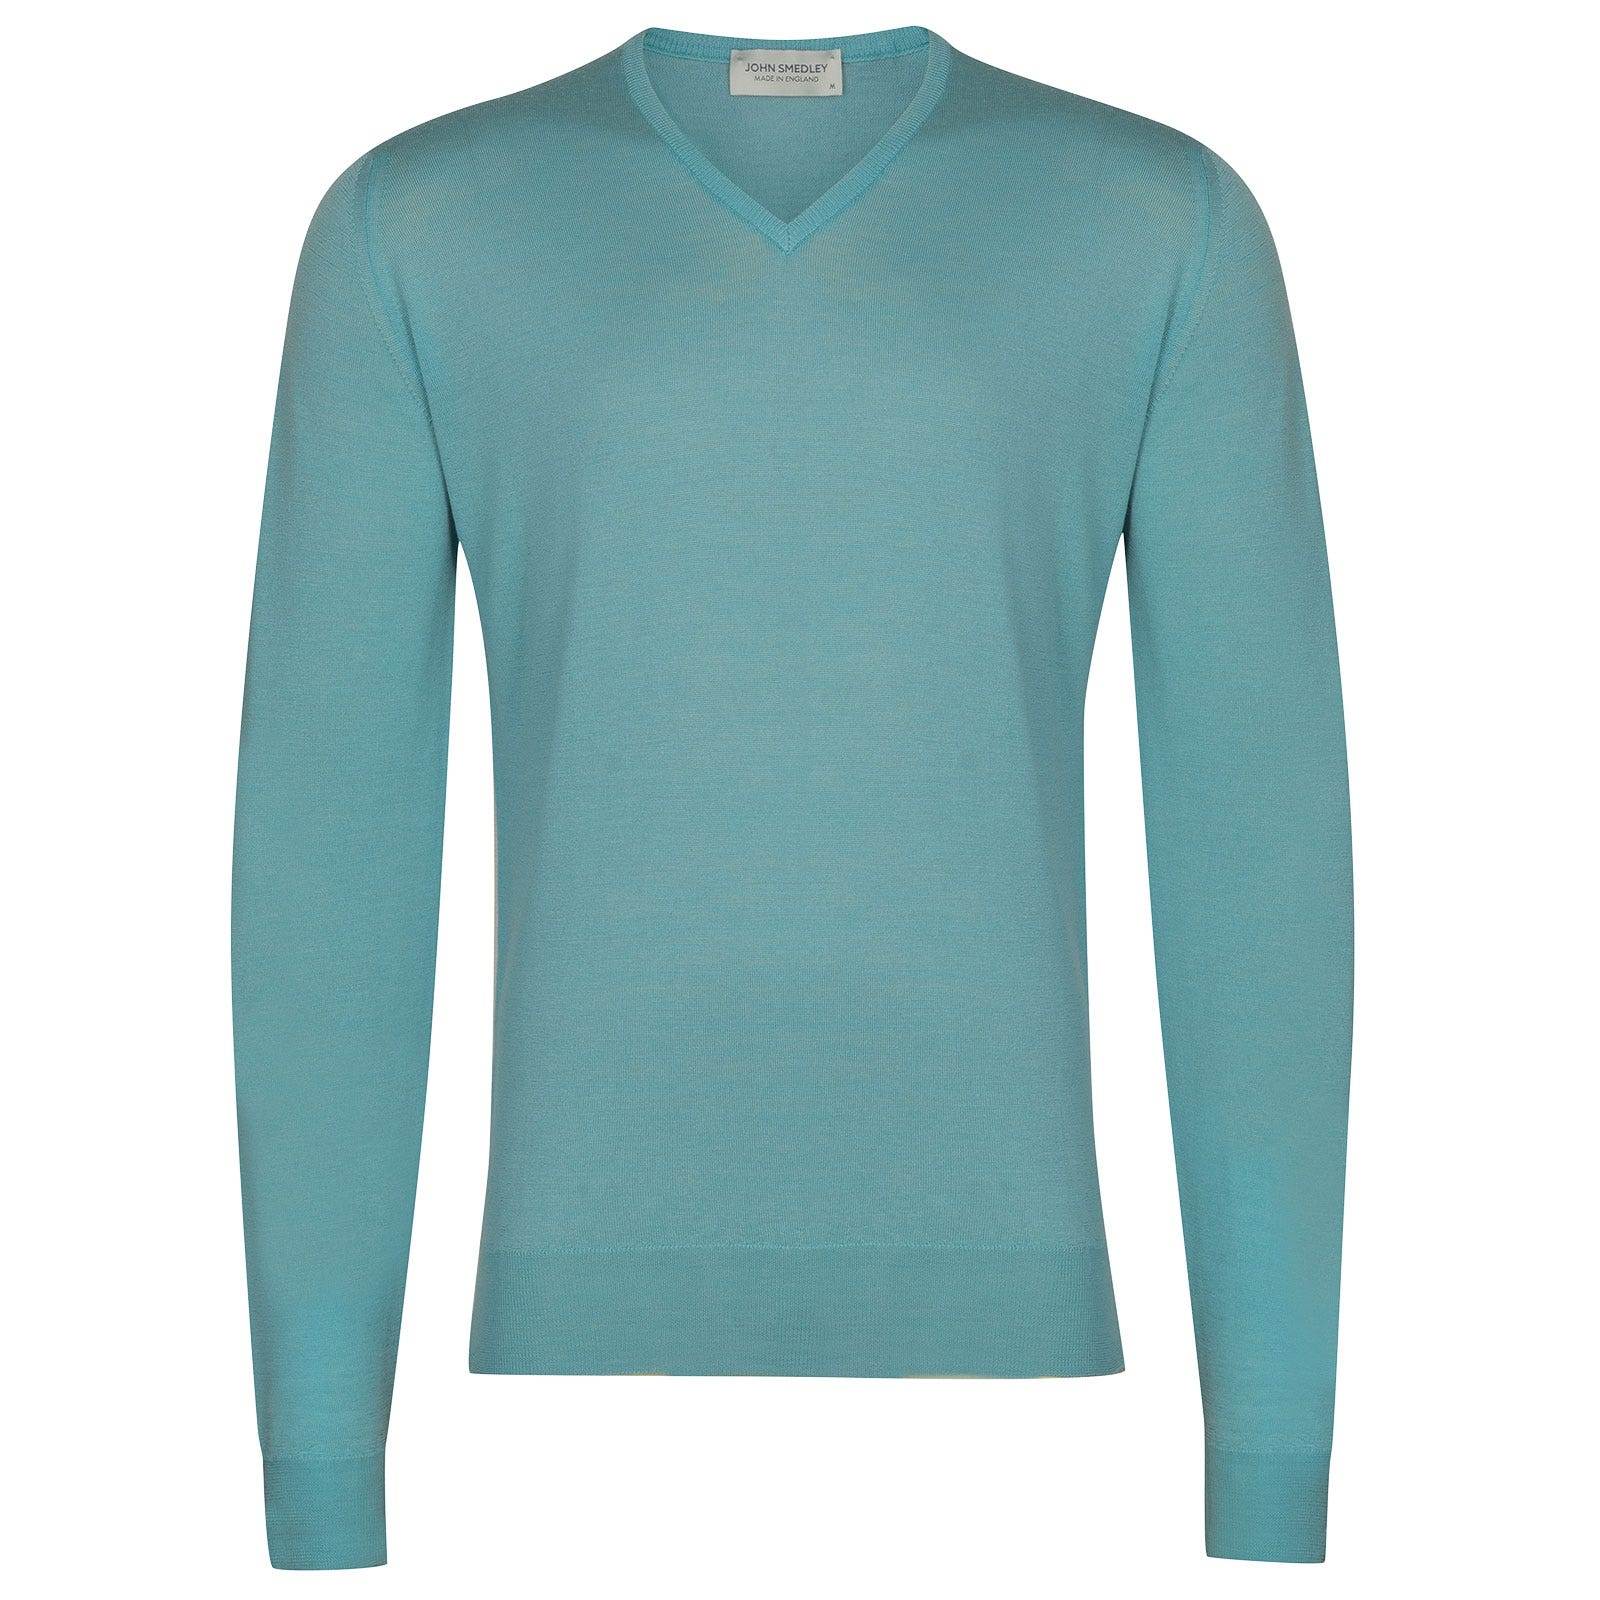 John Smedley Blenheim in Empyrean Blue Pullover-XXL